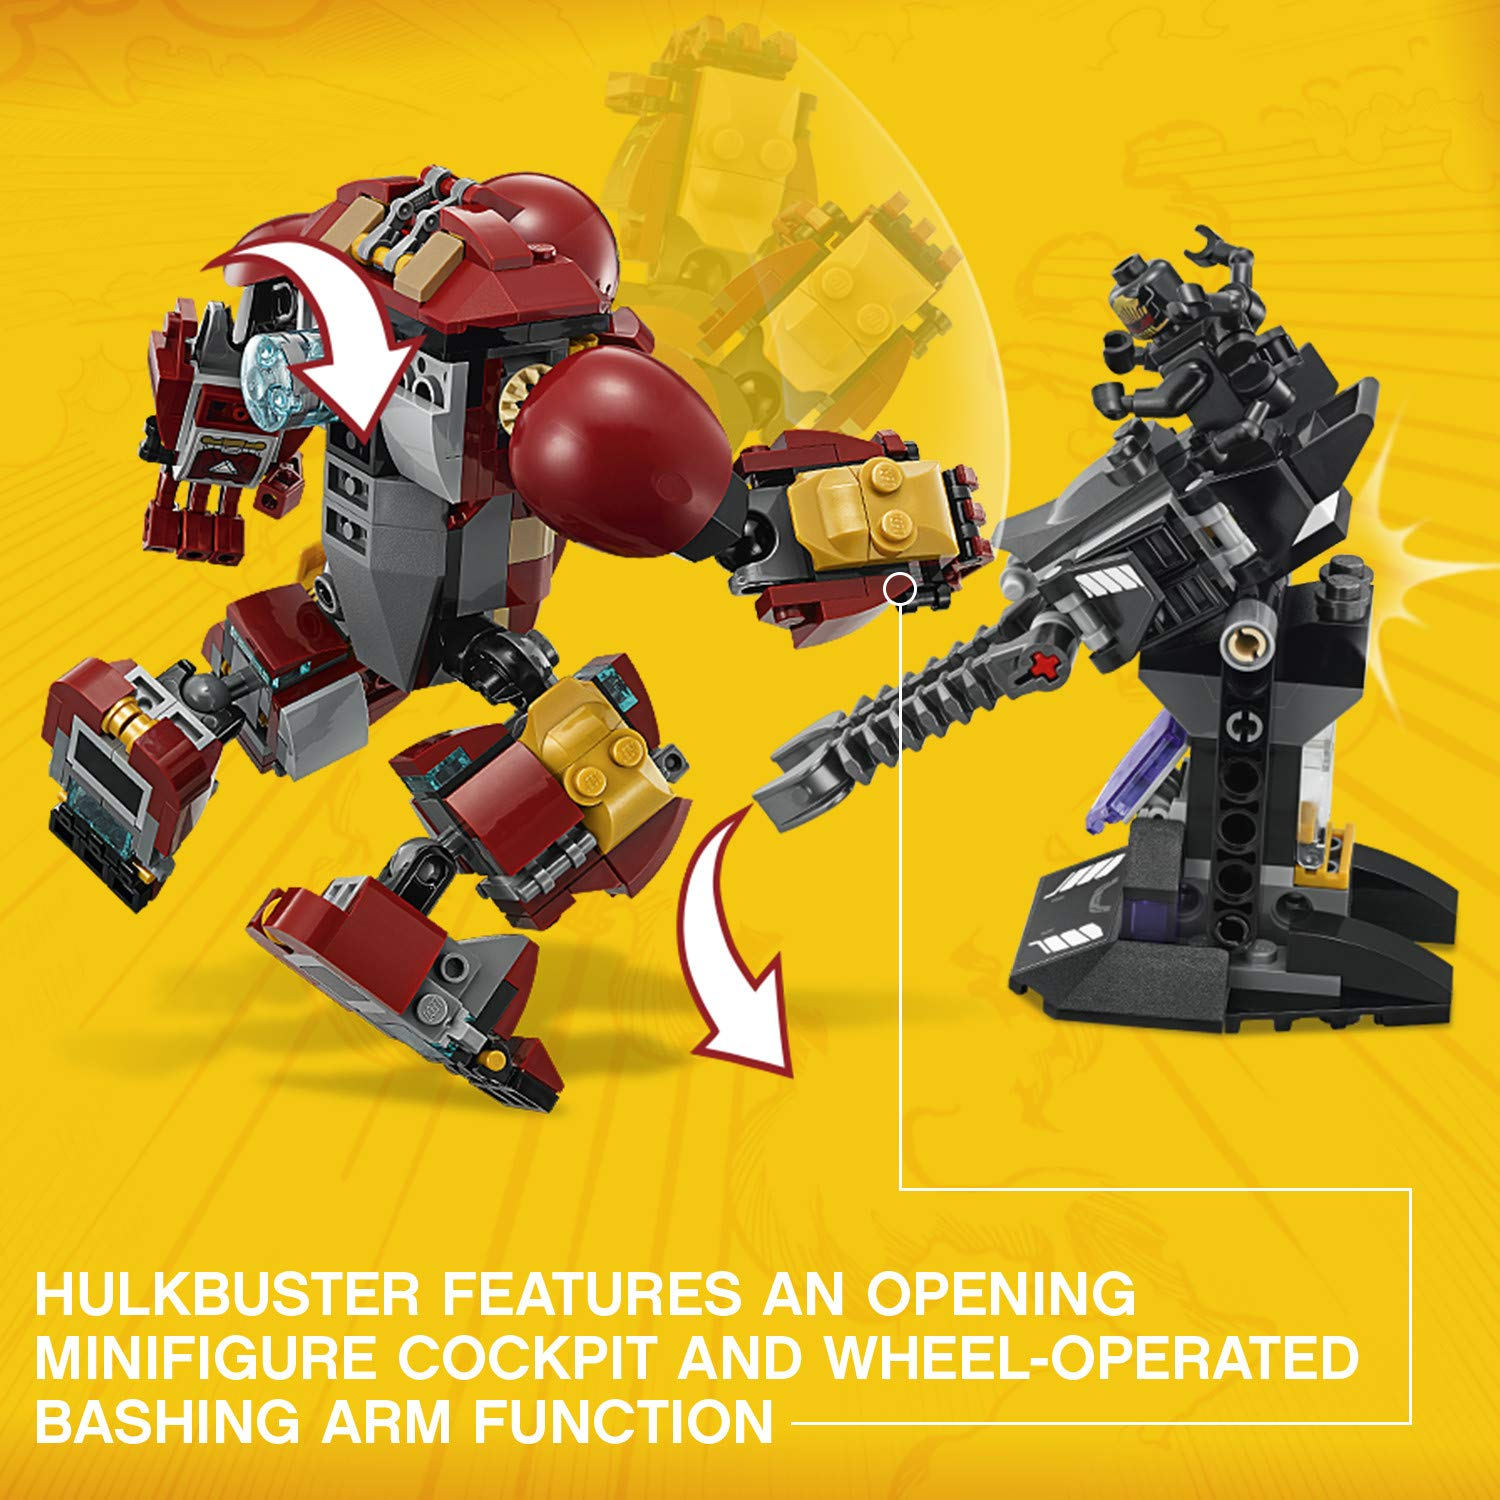 LEGO Marvel Super Heroes Avengers: Infinity War The Hulkbuster Smash-Up 76104 Building Kit (375 Piece) by LEGO (Image #4)